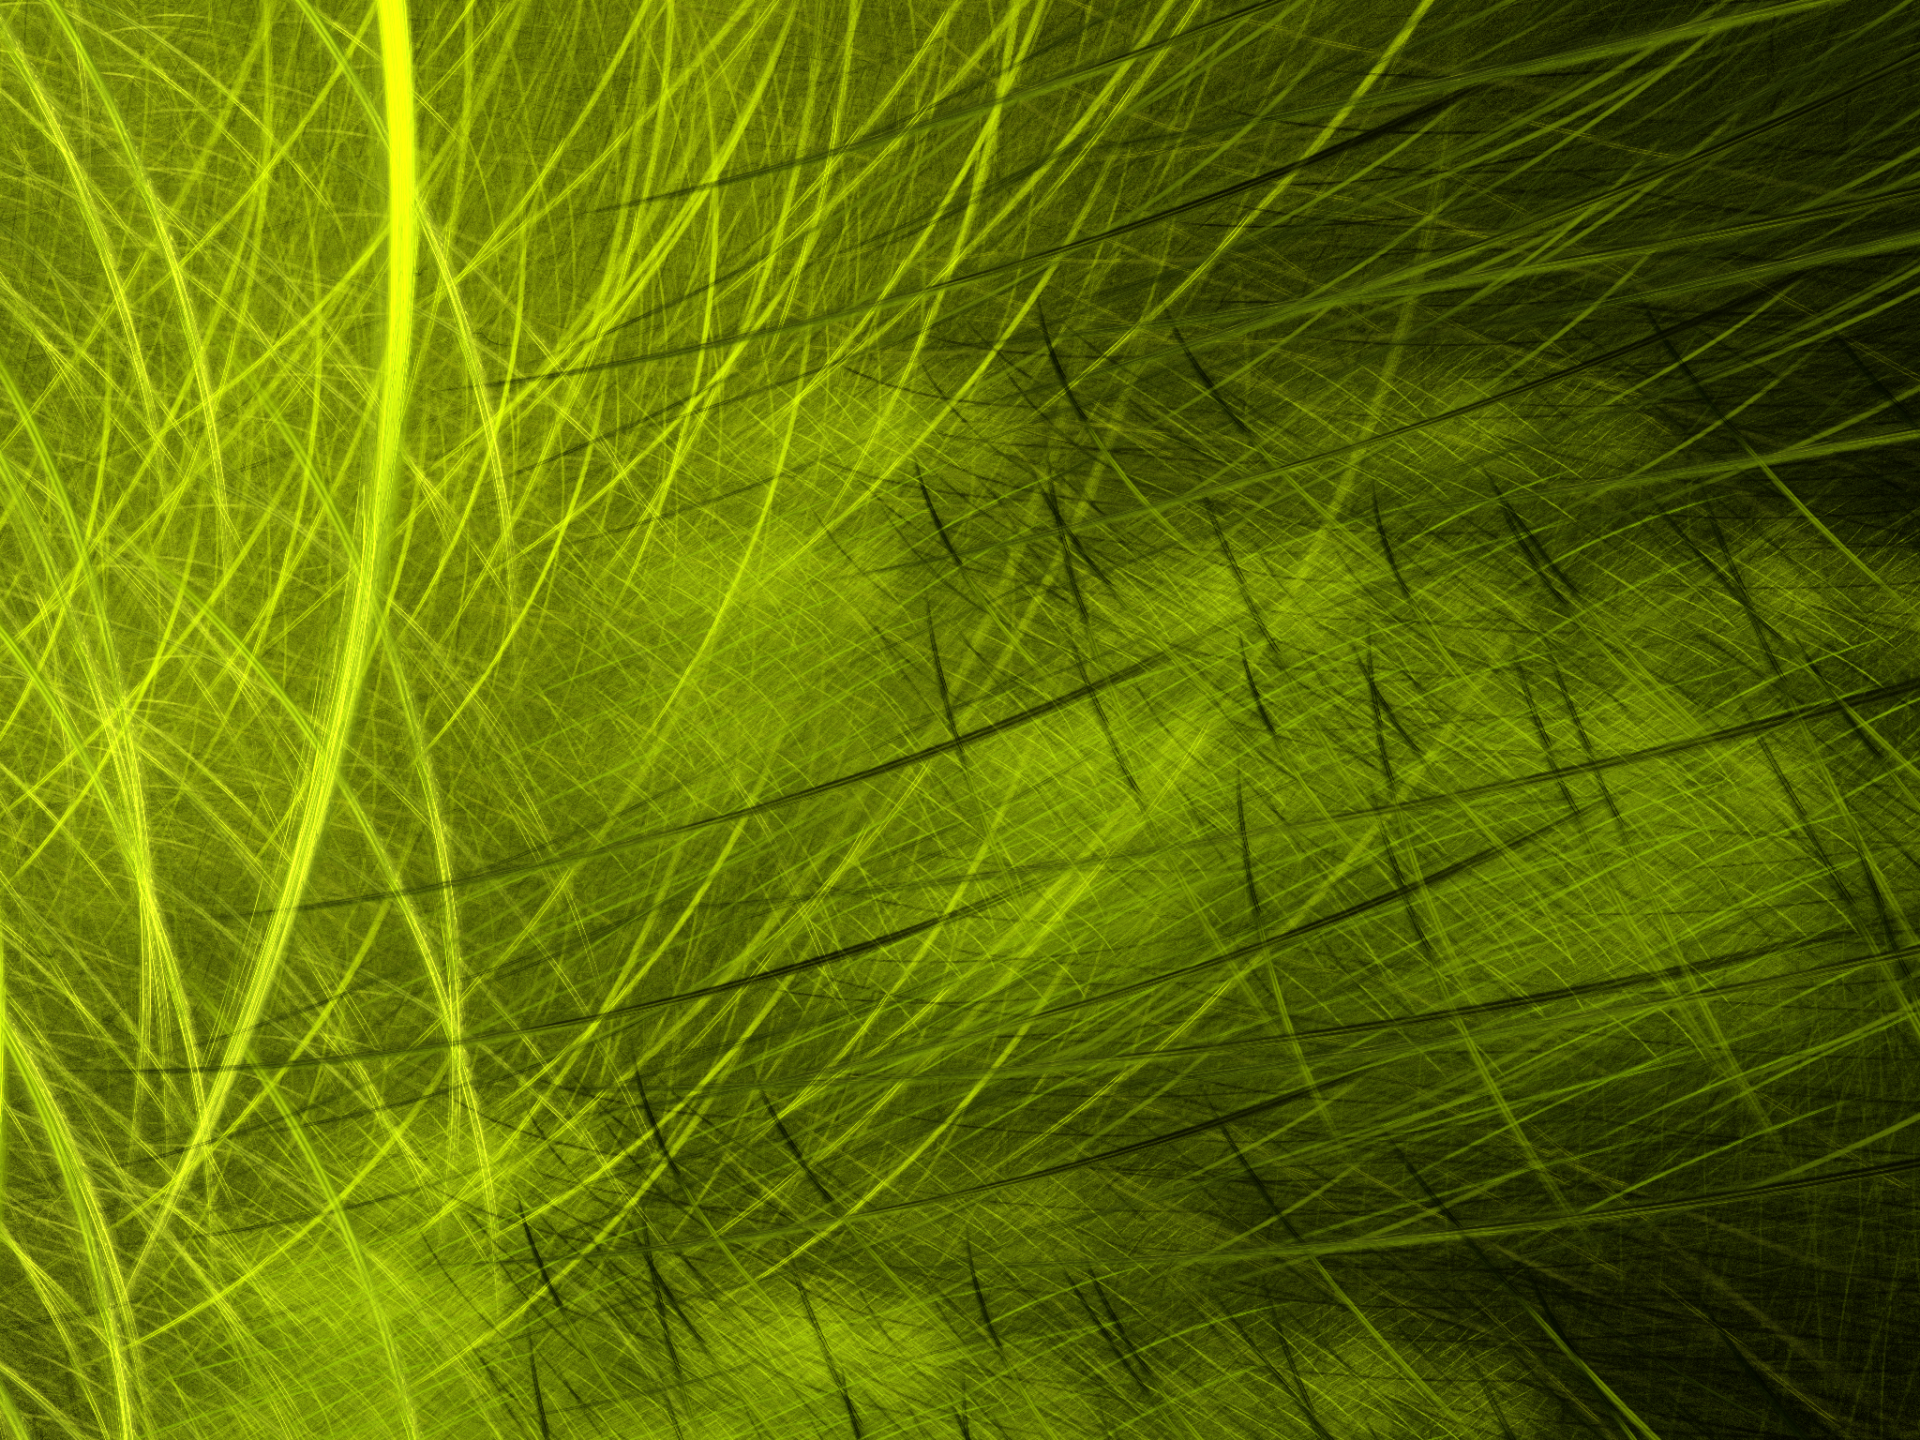 Abstract - Fractal  Abstract Apophysis (software) Green Lines Digital Art Artistic Wallpaper